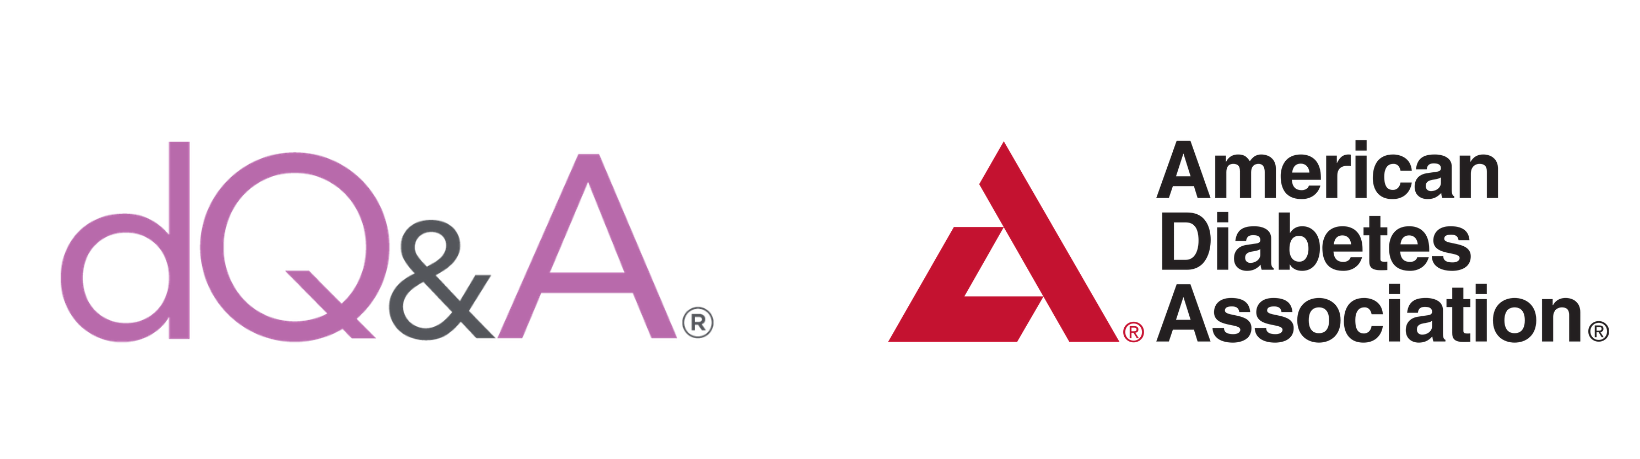 dQ&A and ADA logos